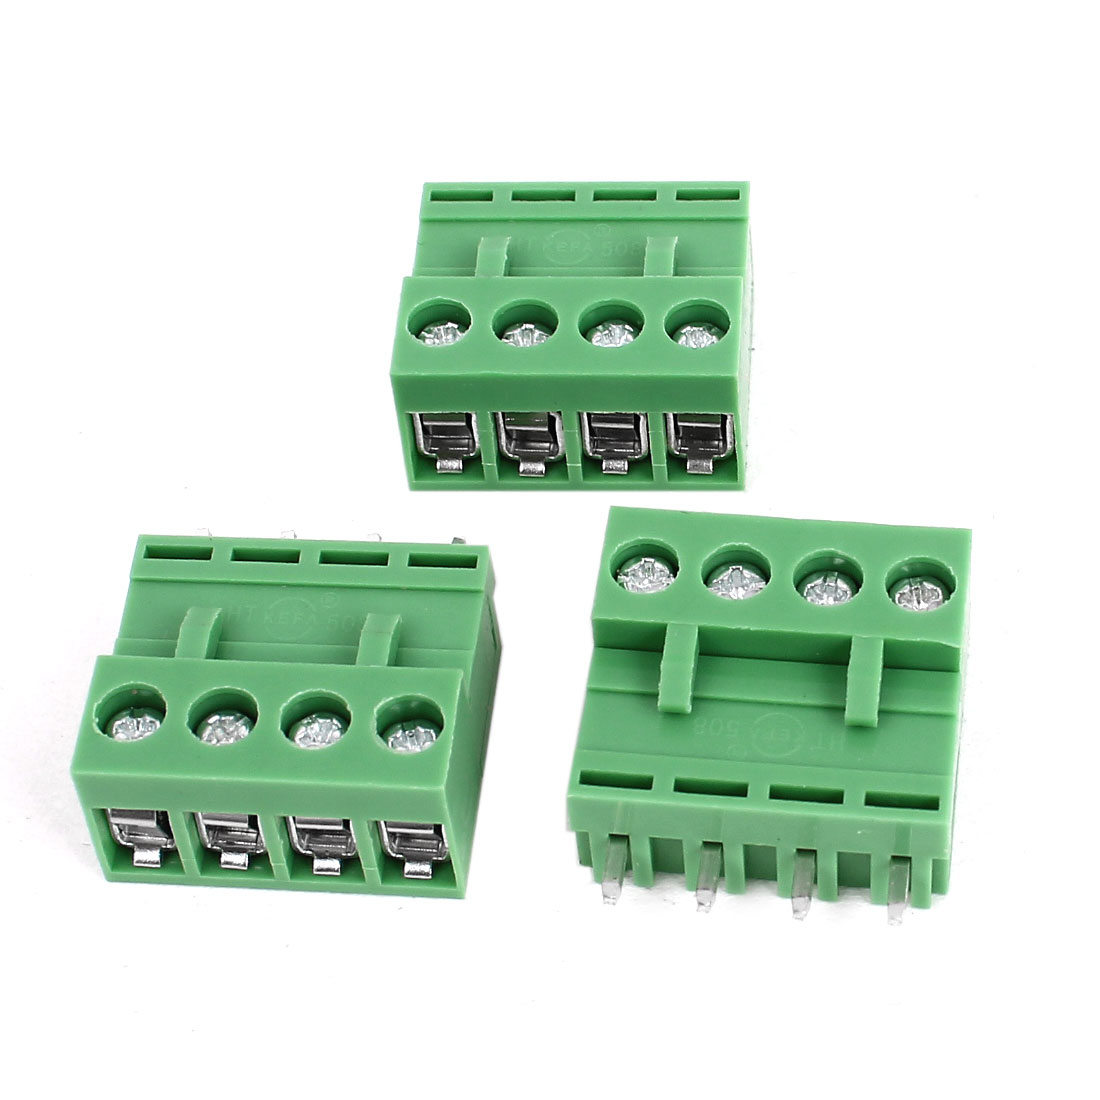 300V 10A 4 Pin 5.08mm Pitch Single Row PCB Screw Terminal Block Straight Connector 3pcs Green